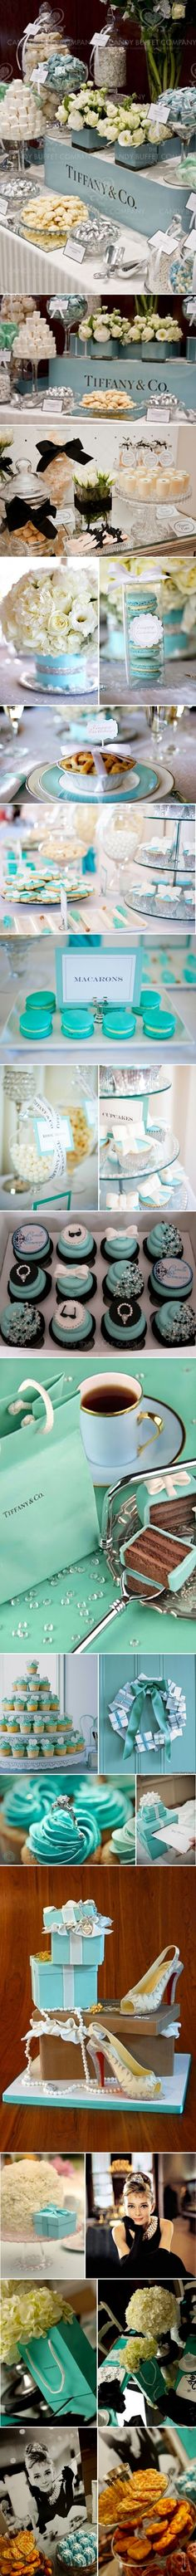 Hey @Mercedes Martin this made me think of you     Tiffany & Co. Theme  ( I love this movie and I love this idea for a classy wedding) I would deff not wear a black dress but my brides maids could! SO PRETTY)